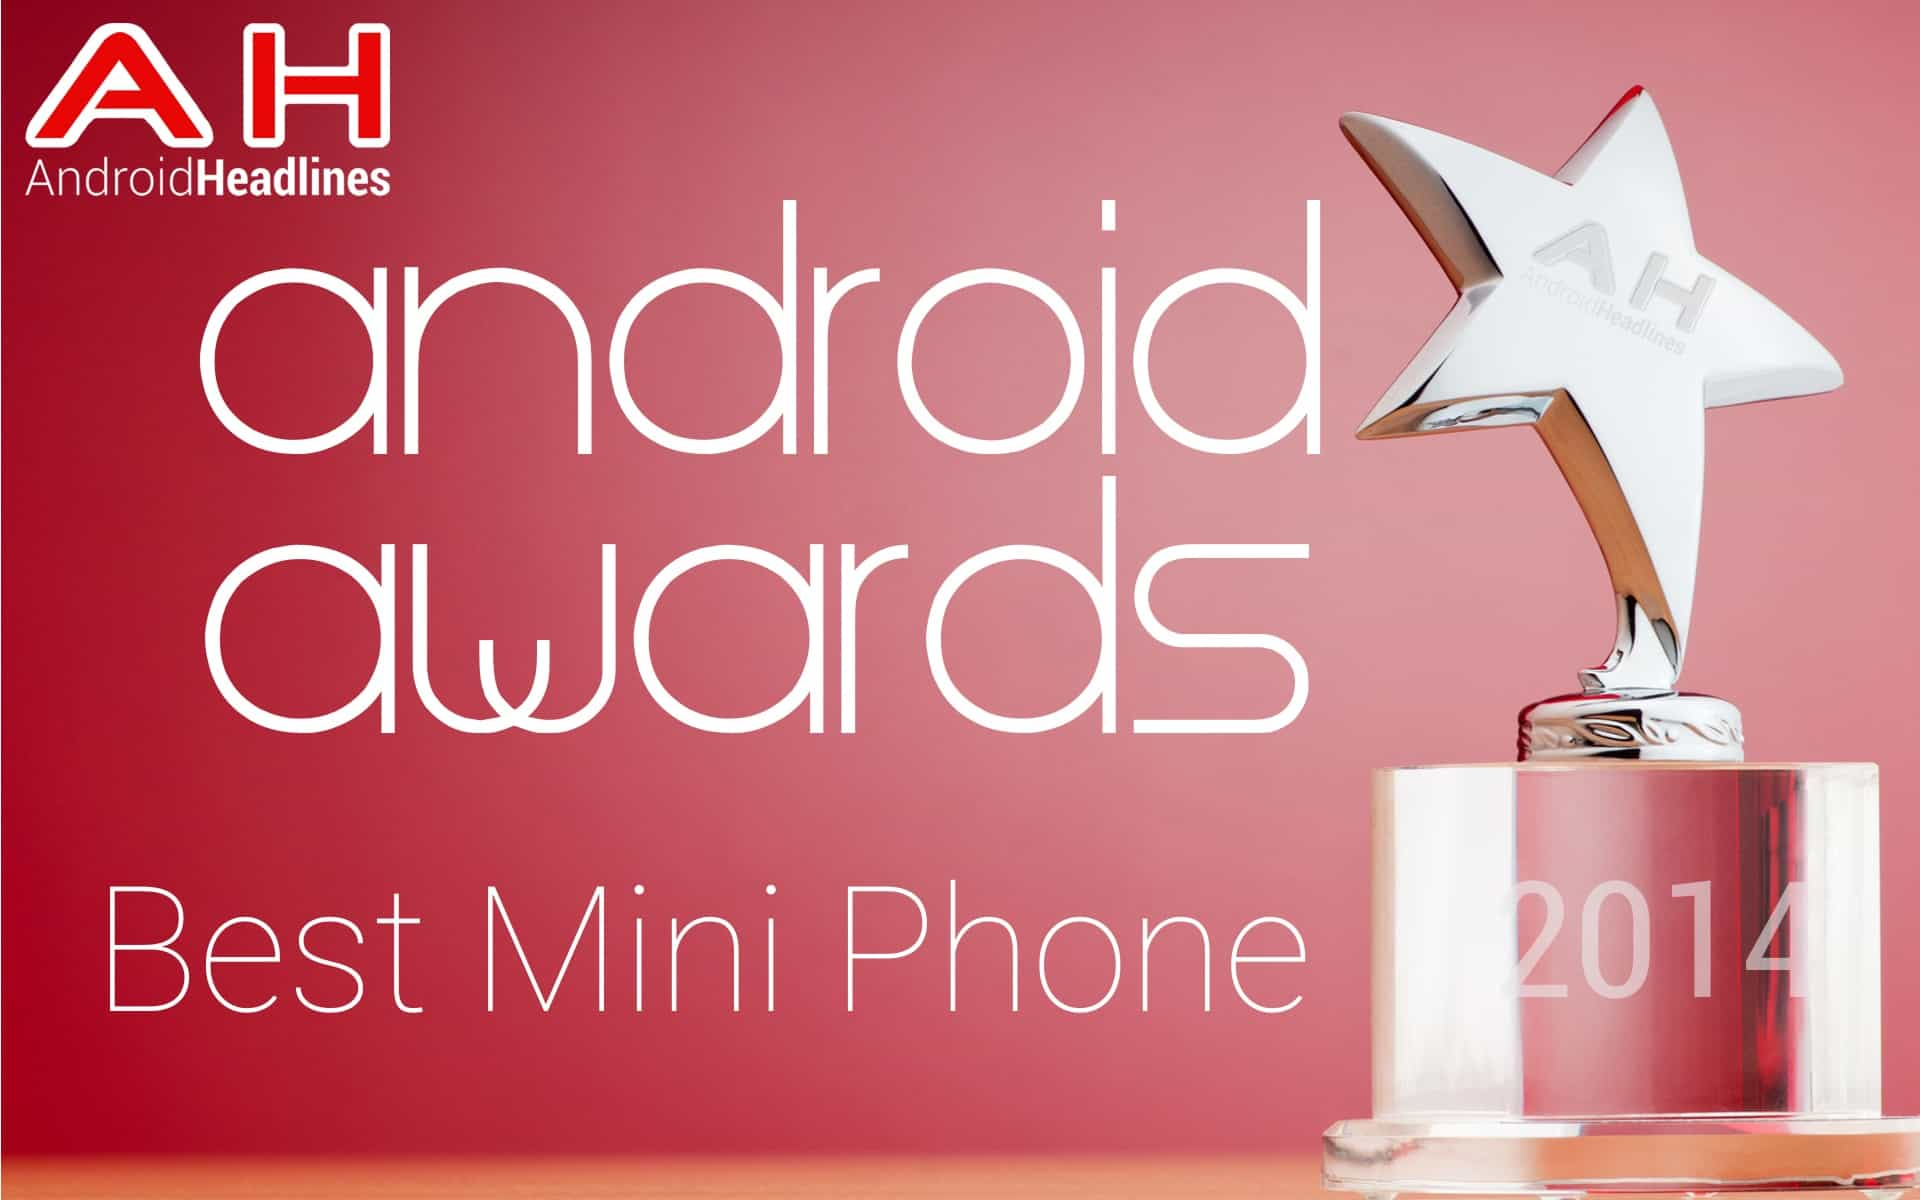 AH Awards 2014 Best Mini Android Smartphone of the year